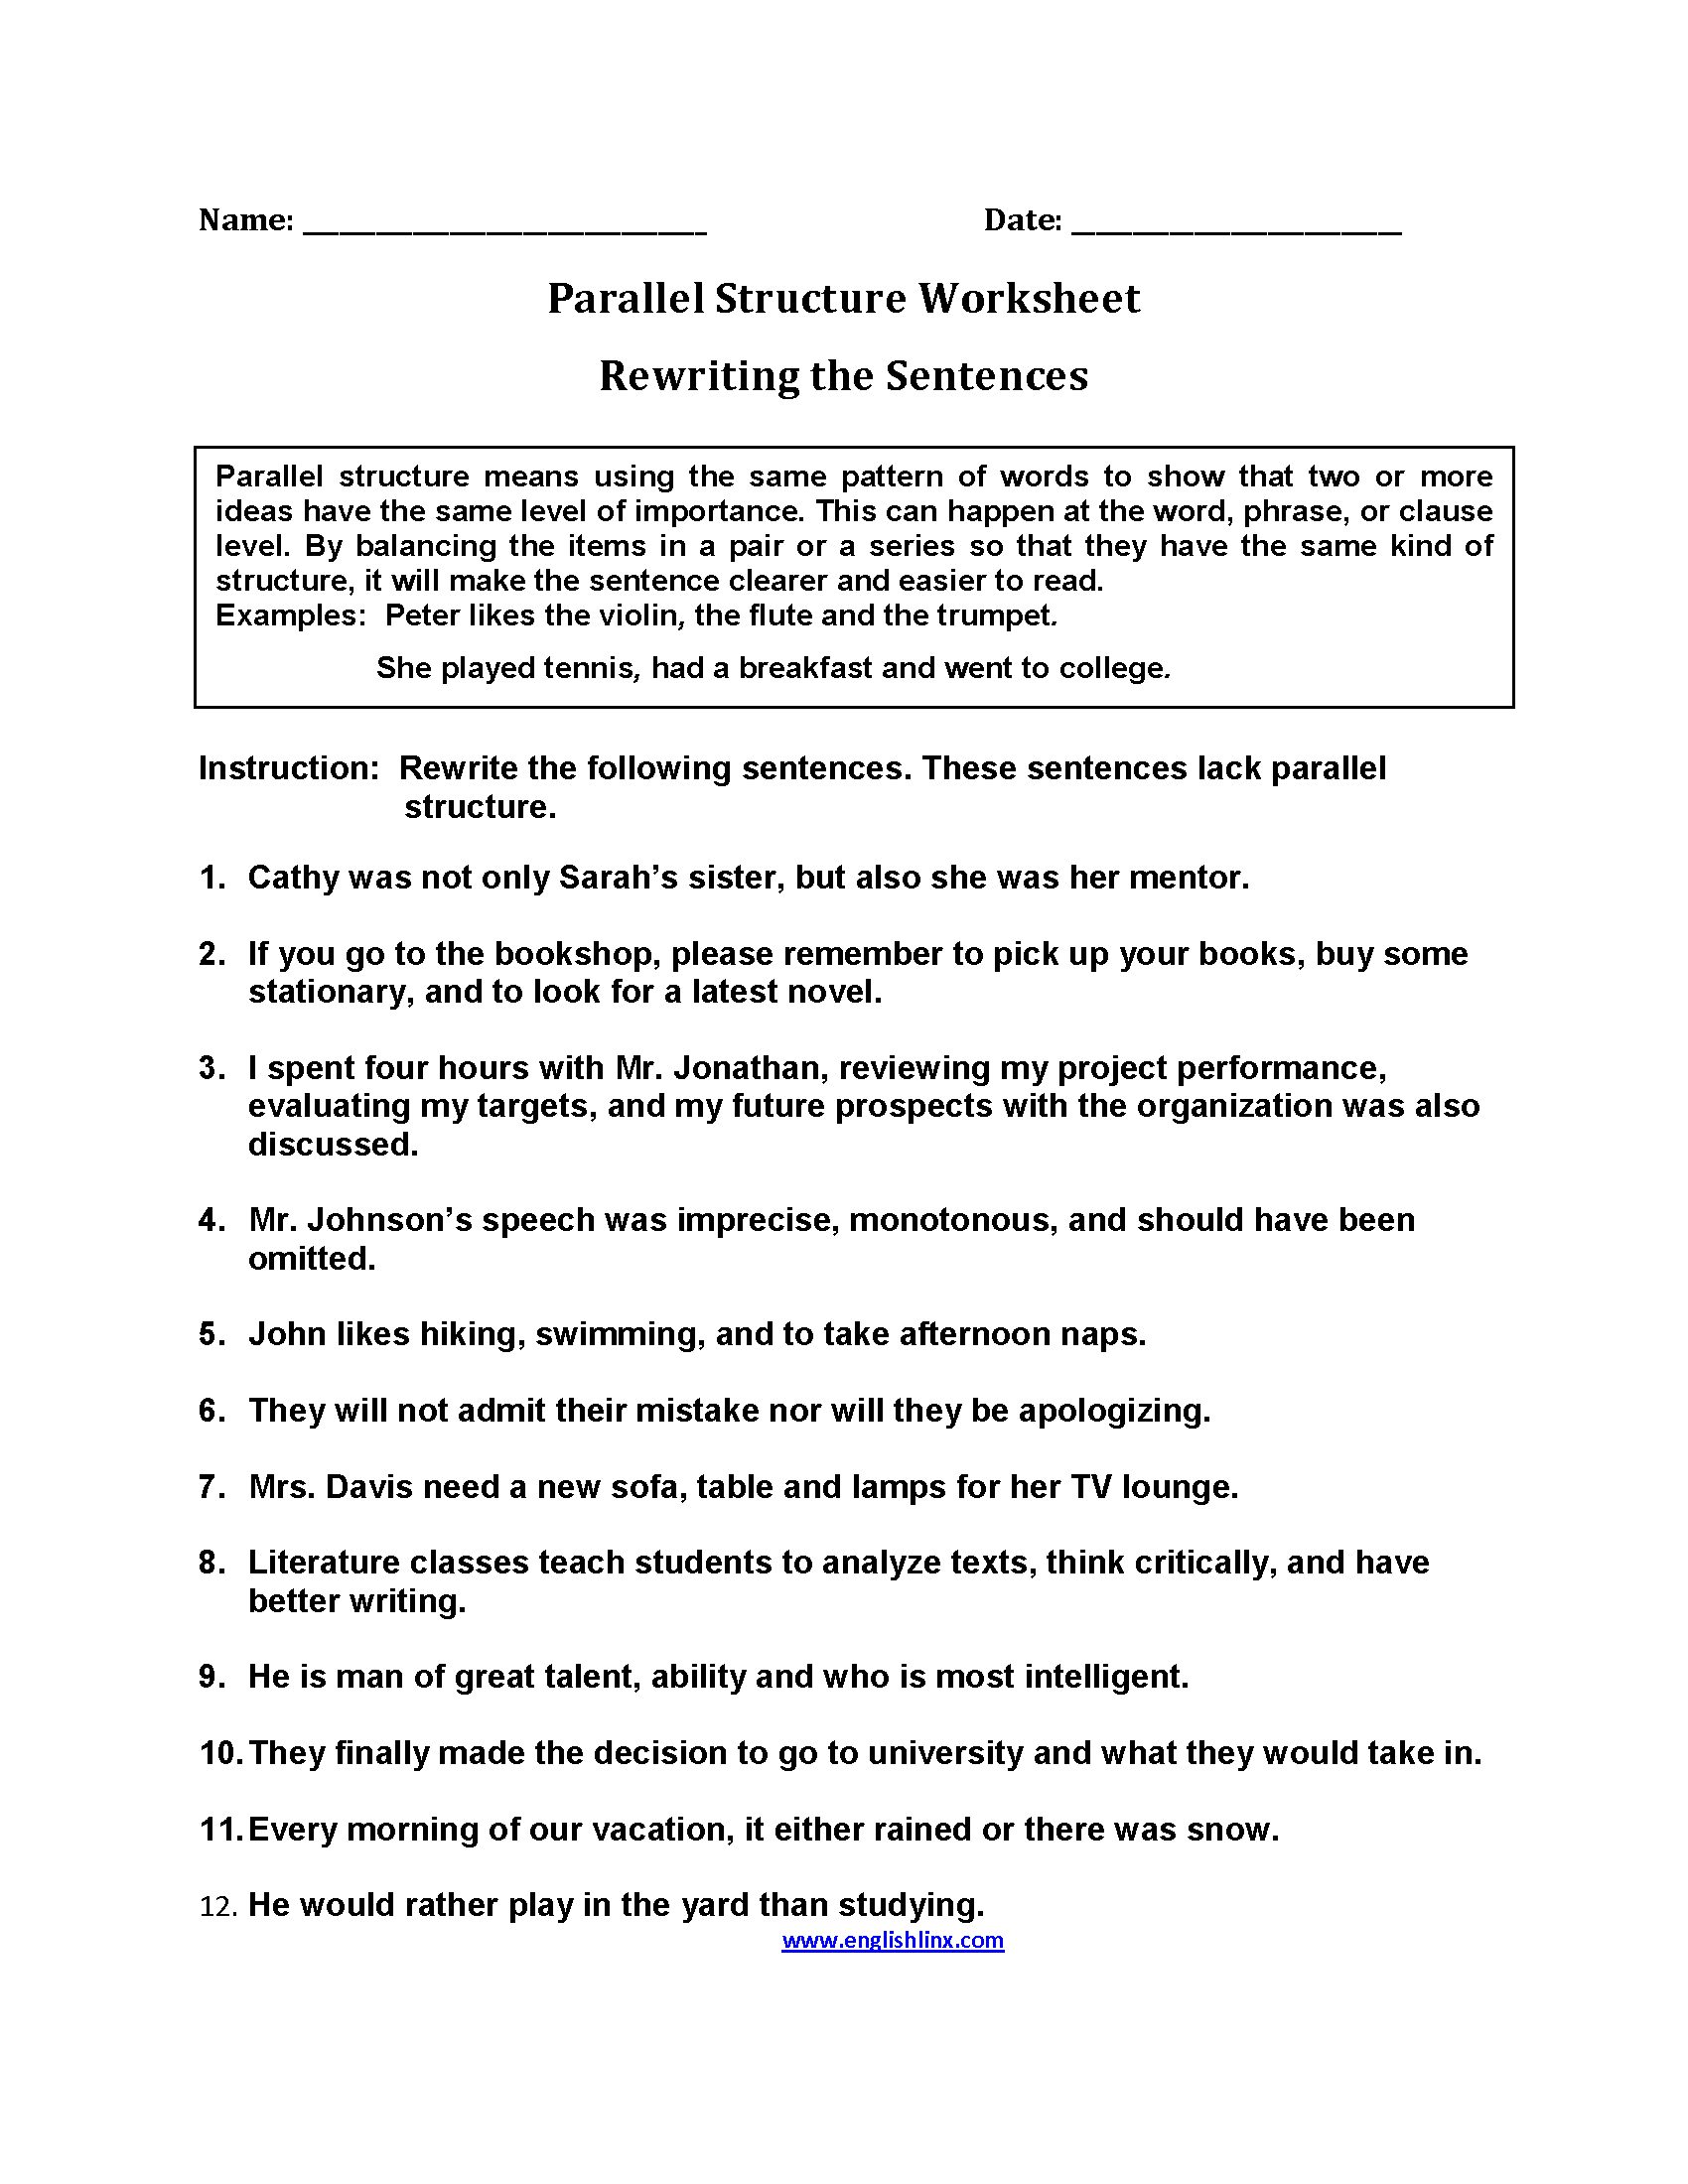 Parallel Structure Worksheets – Sentence Structure Practice Worksheets